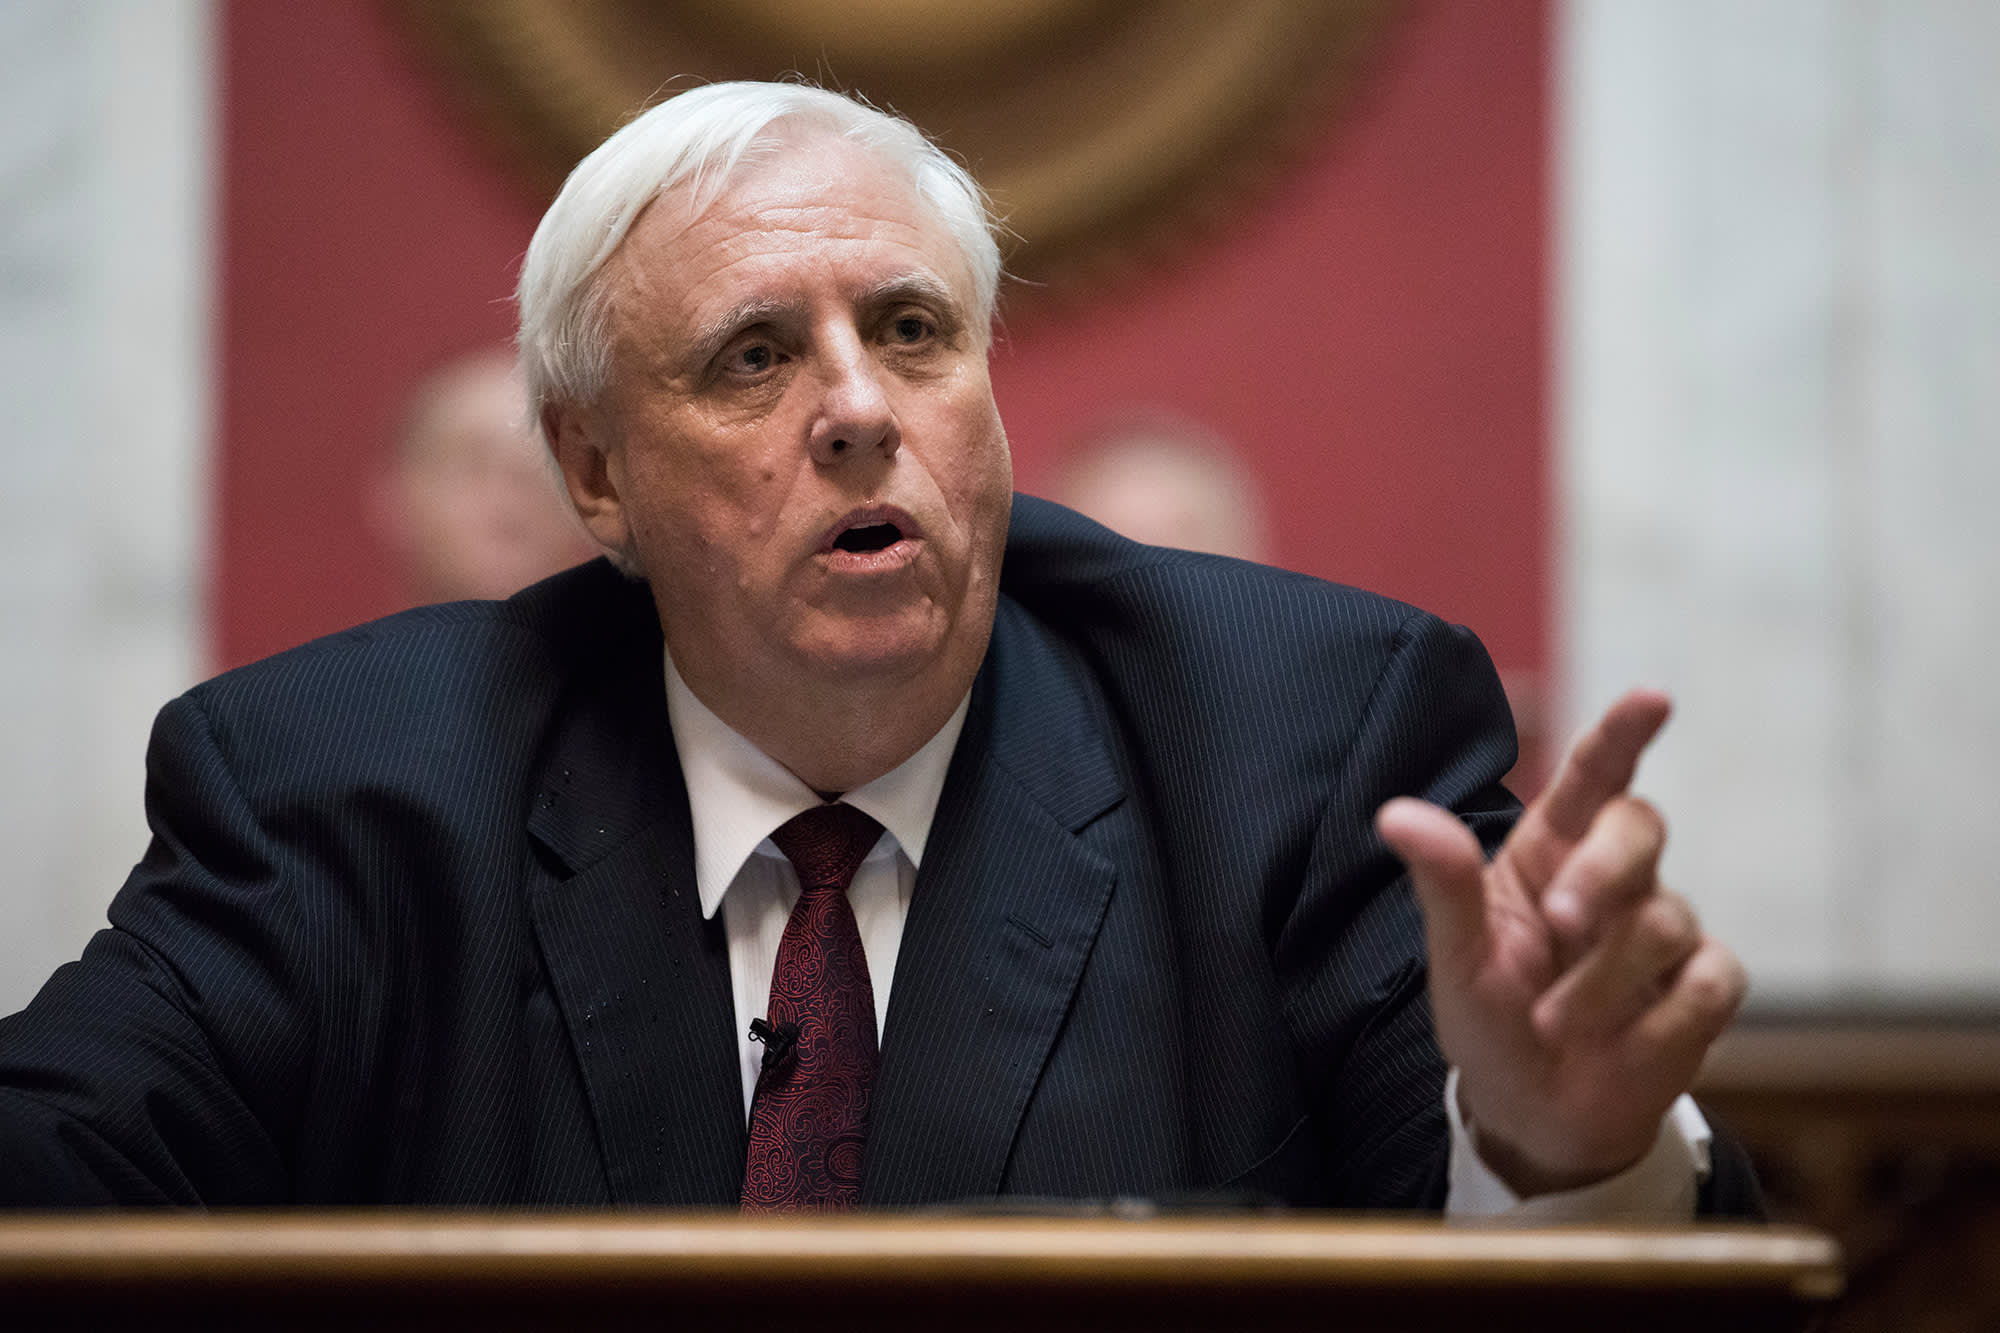 West Virginia governor claims every person over 65 could be vaccinated by Valentine's Day